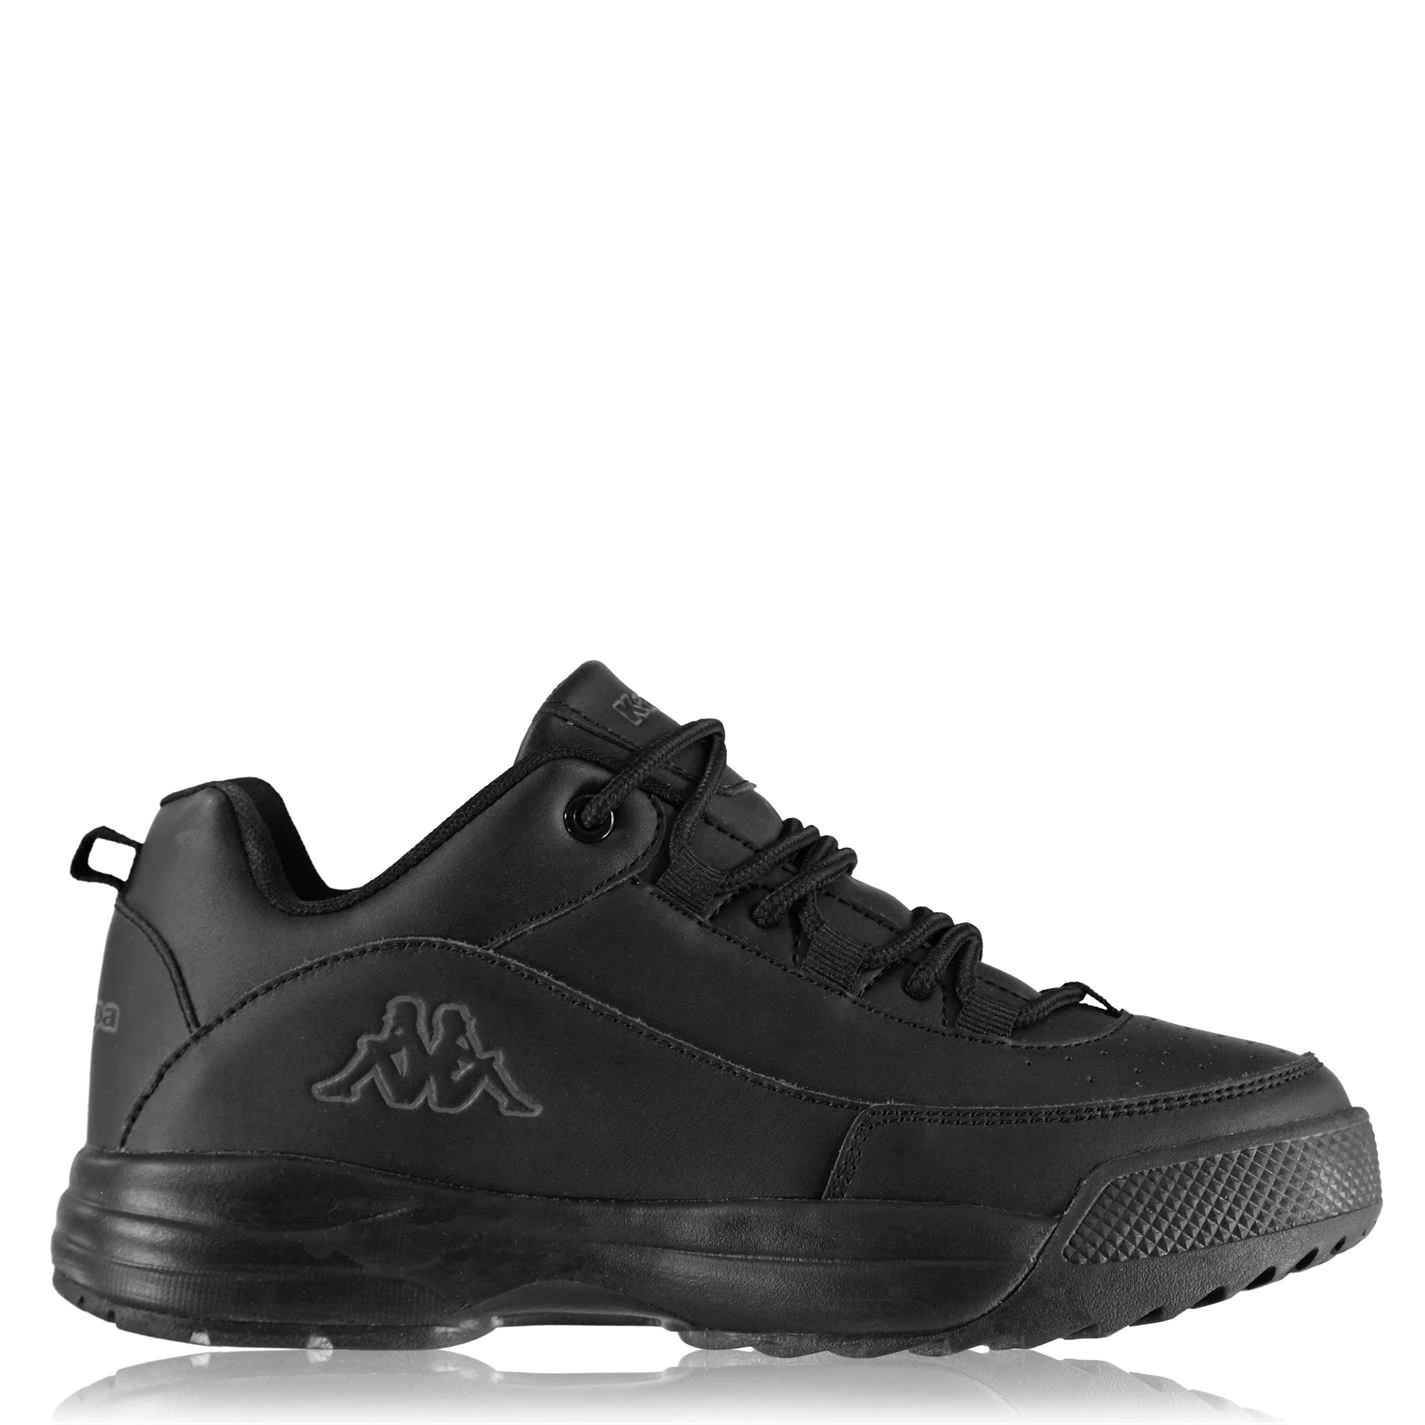 Kappa Montague Childrens Trainers Black/Blk